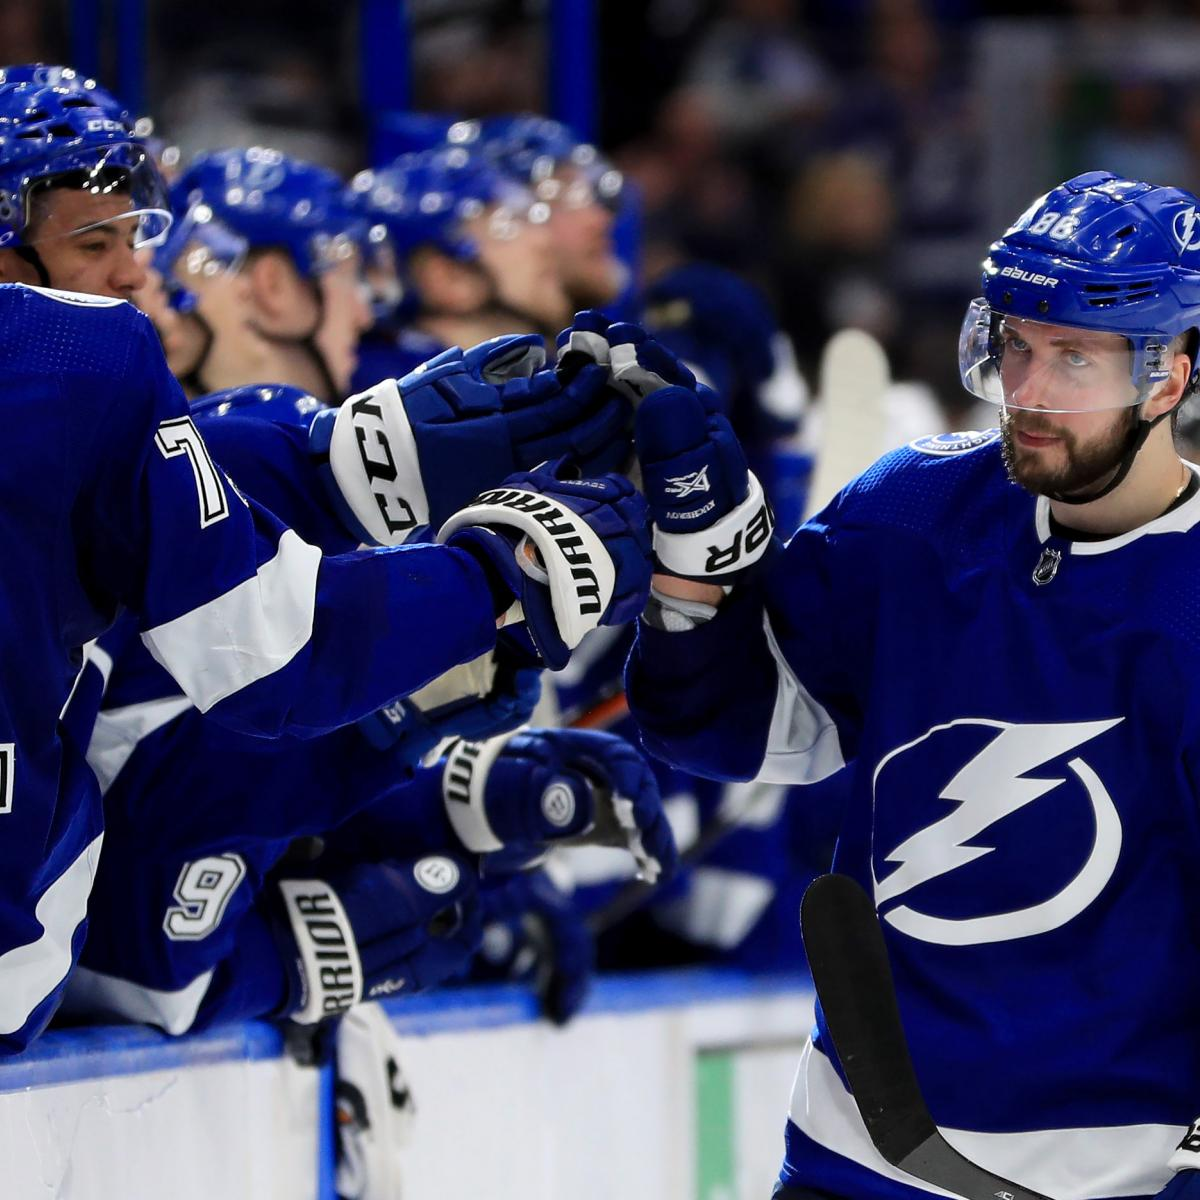 NHL Playoffs Bracket 2019: Dates, Matchups, Game Times and ...